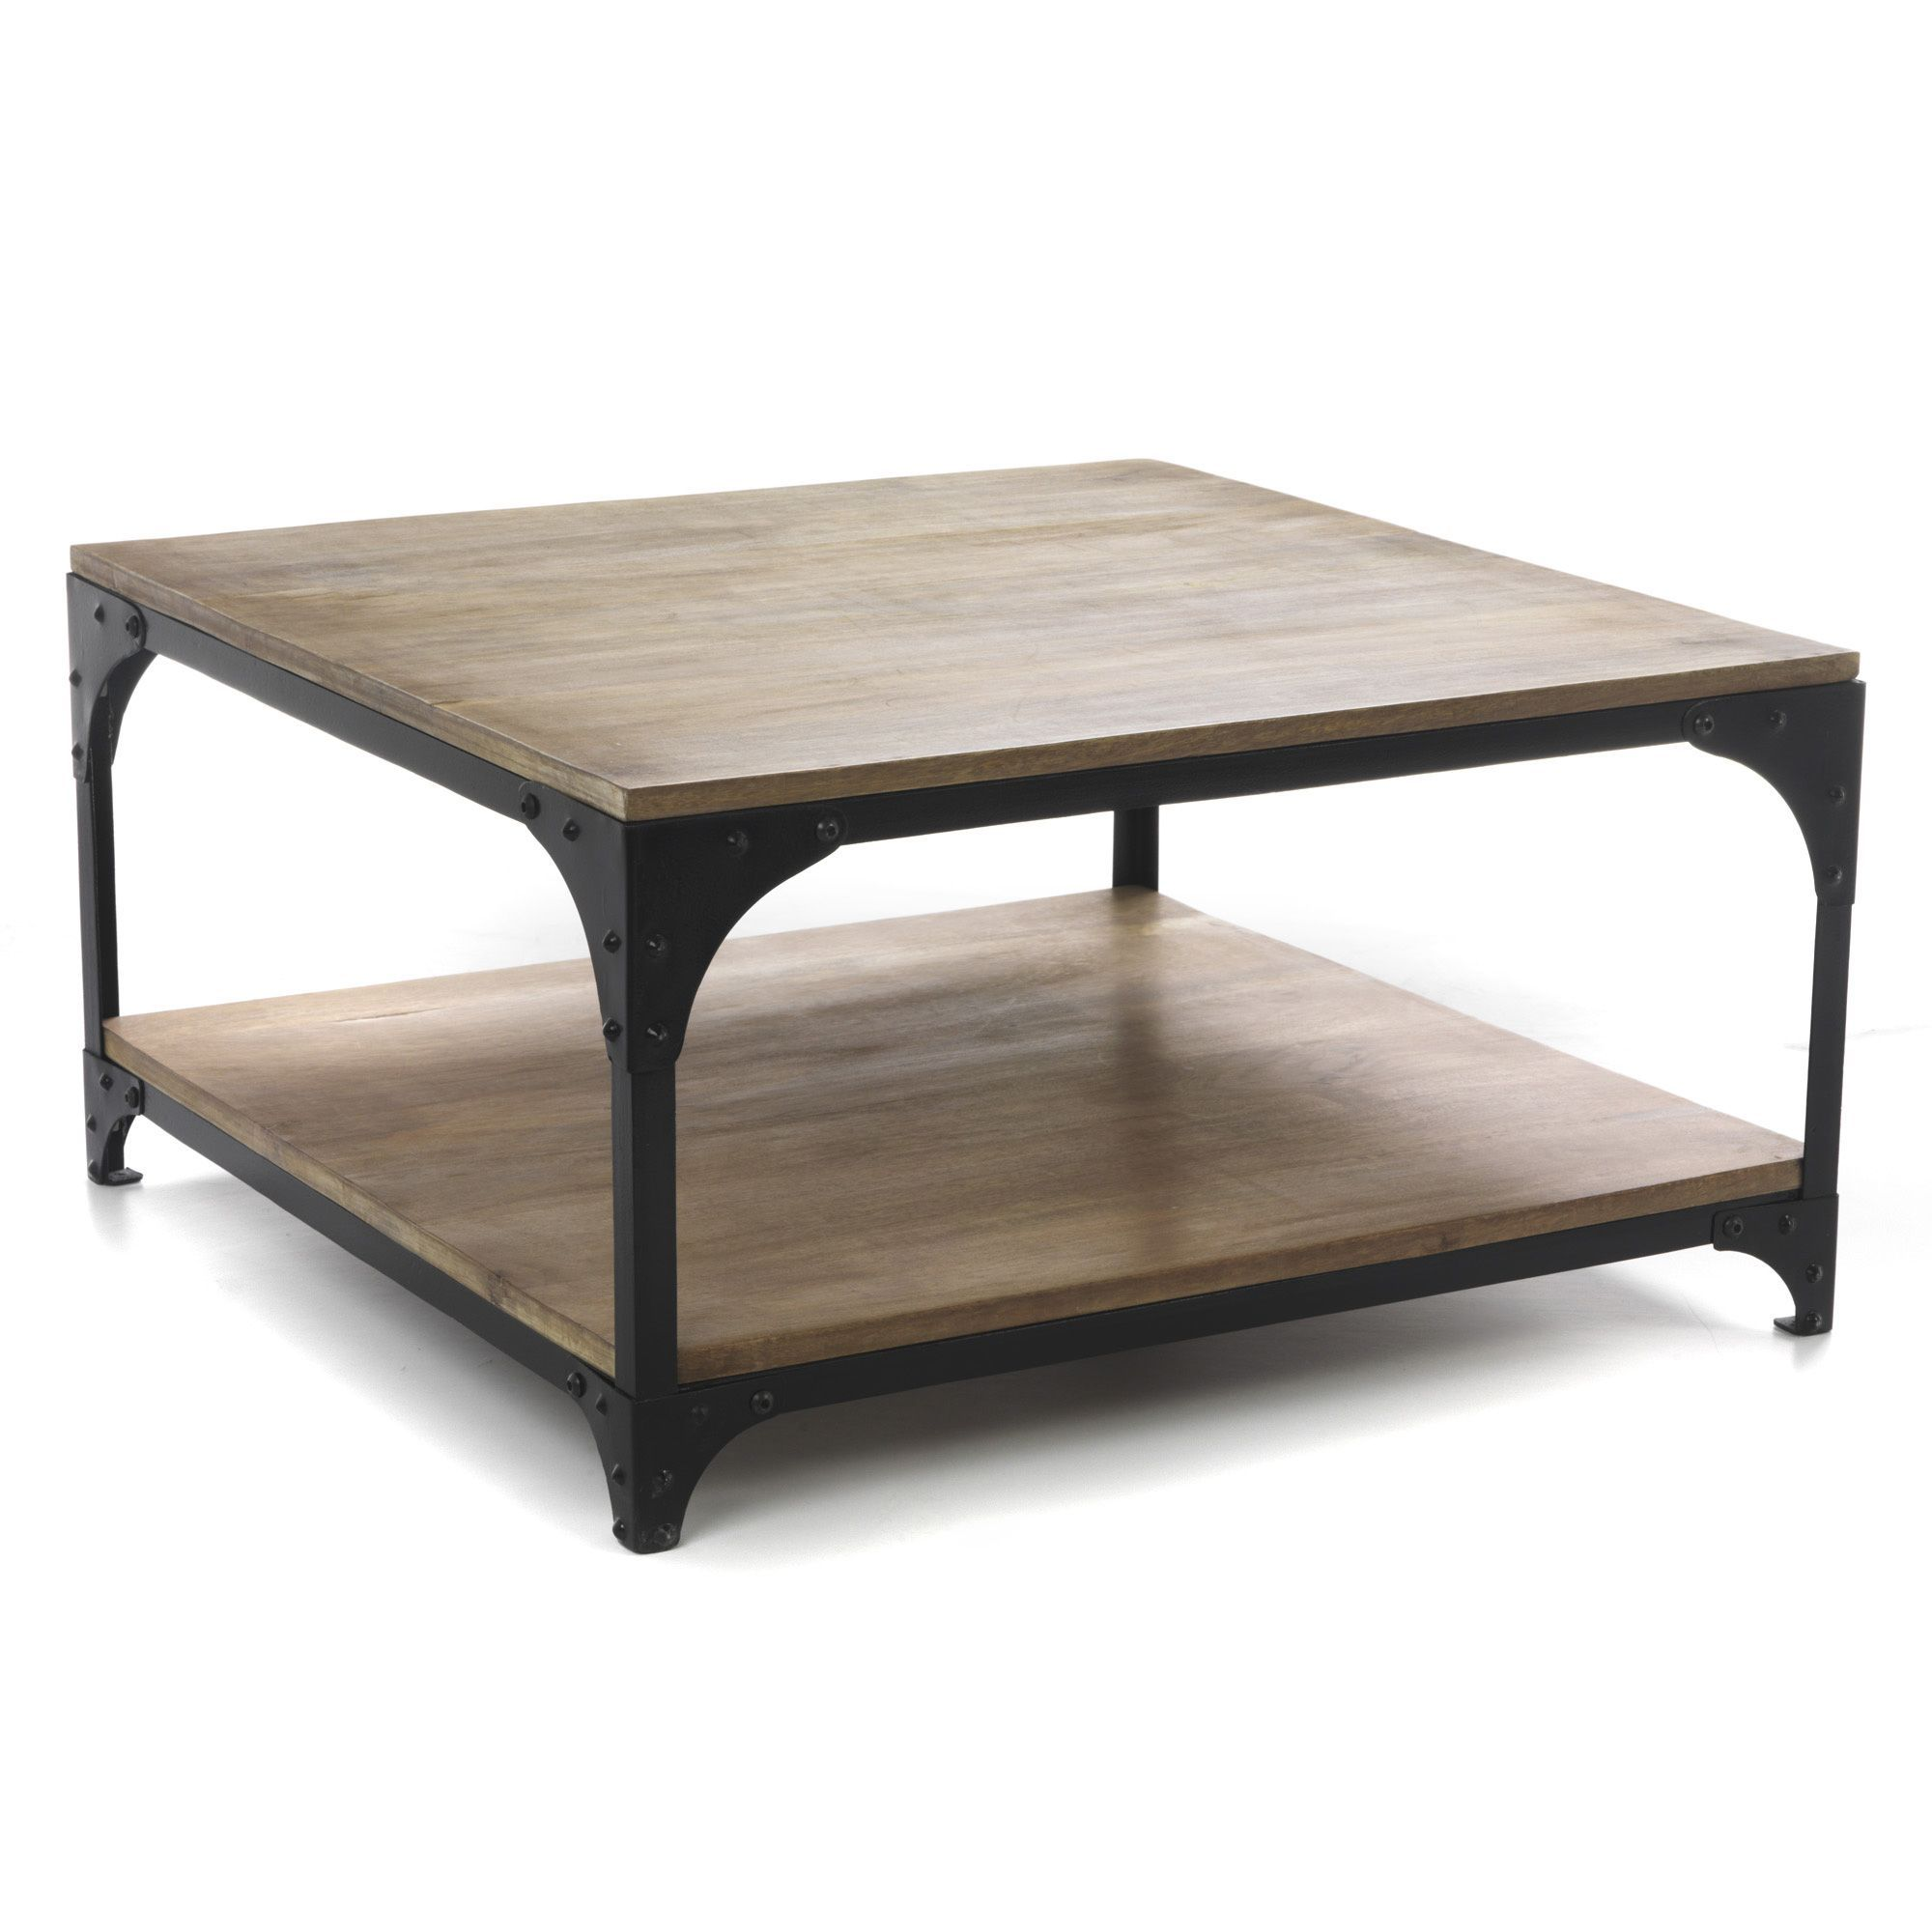 Table basse carr e industrielle naturel new ately les for Table de salle a manger pliante console